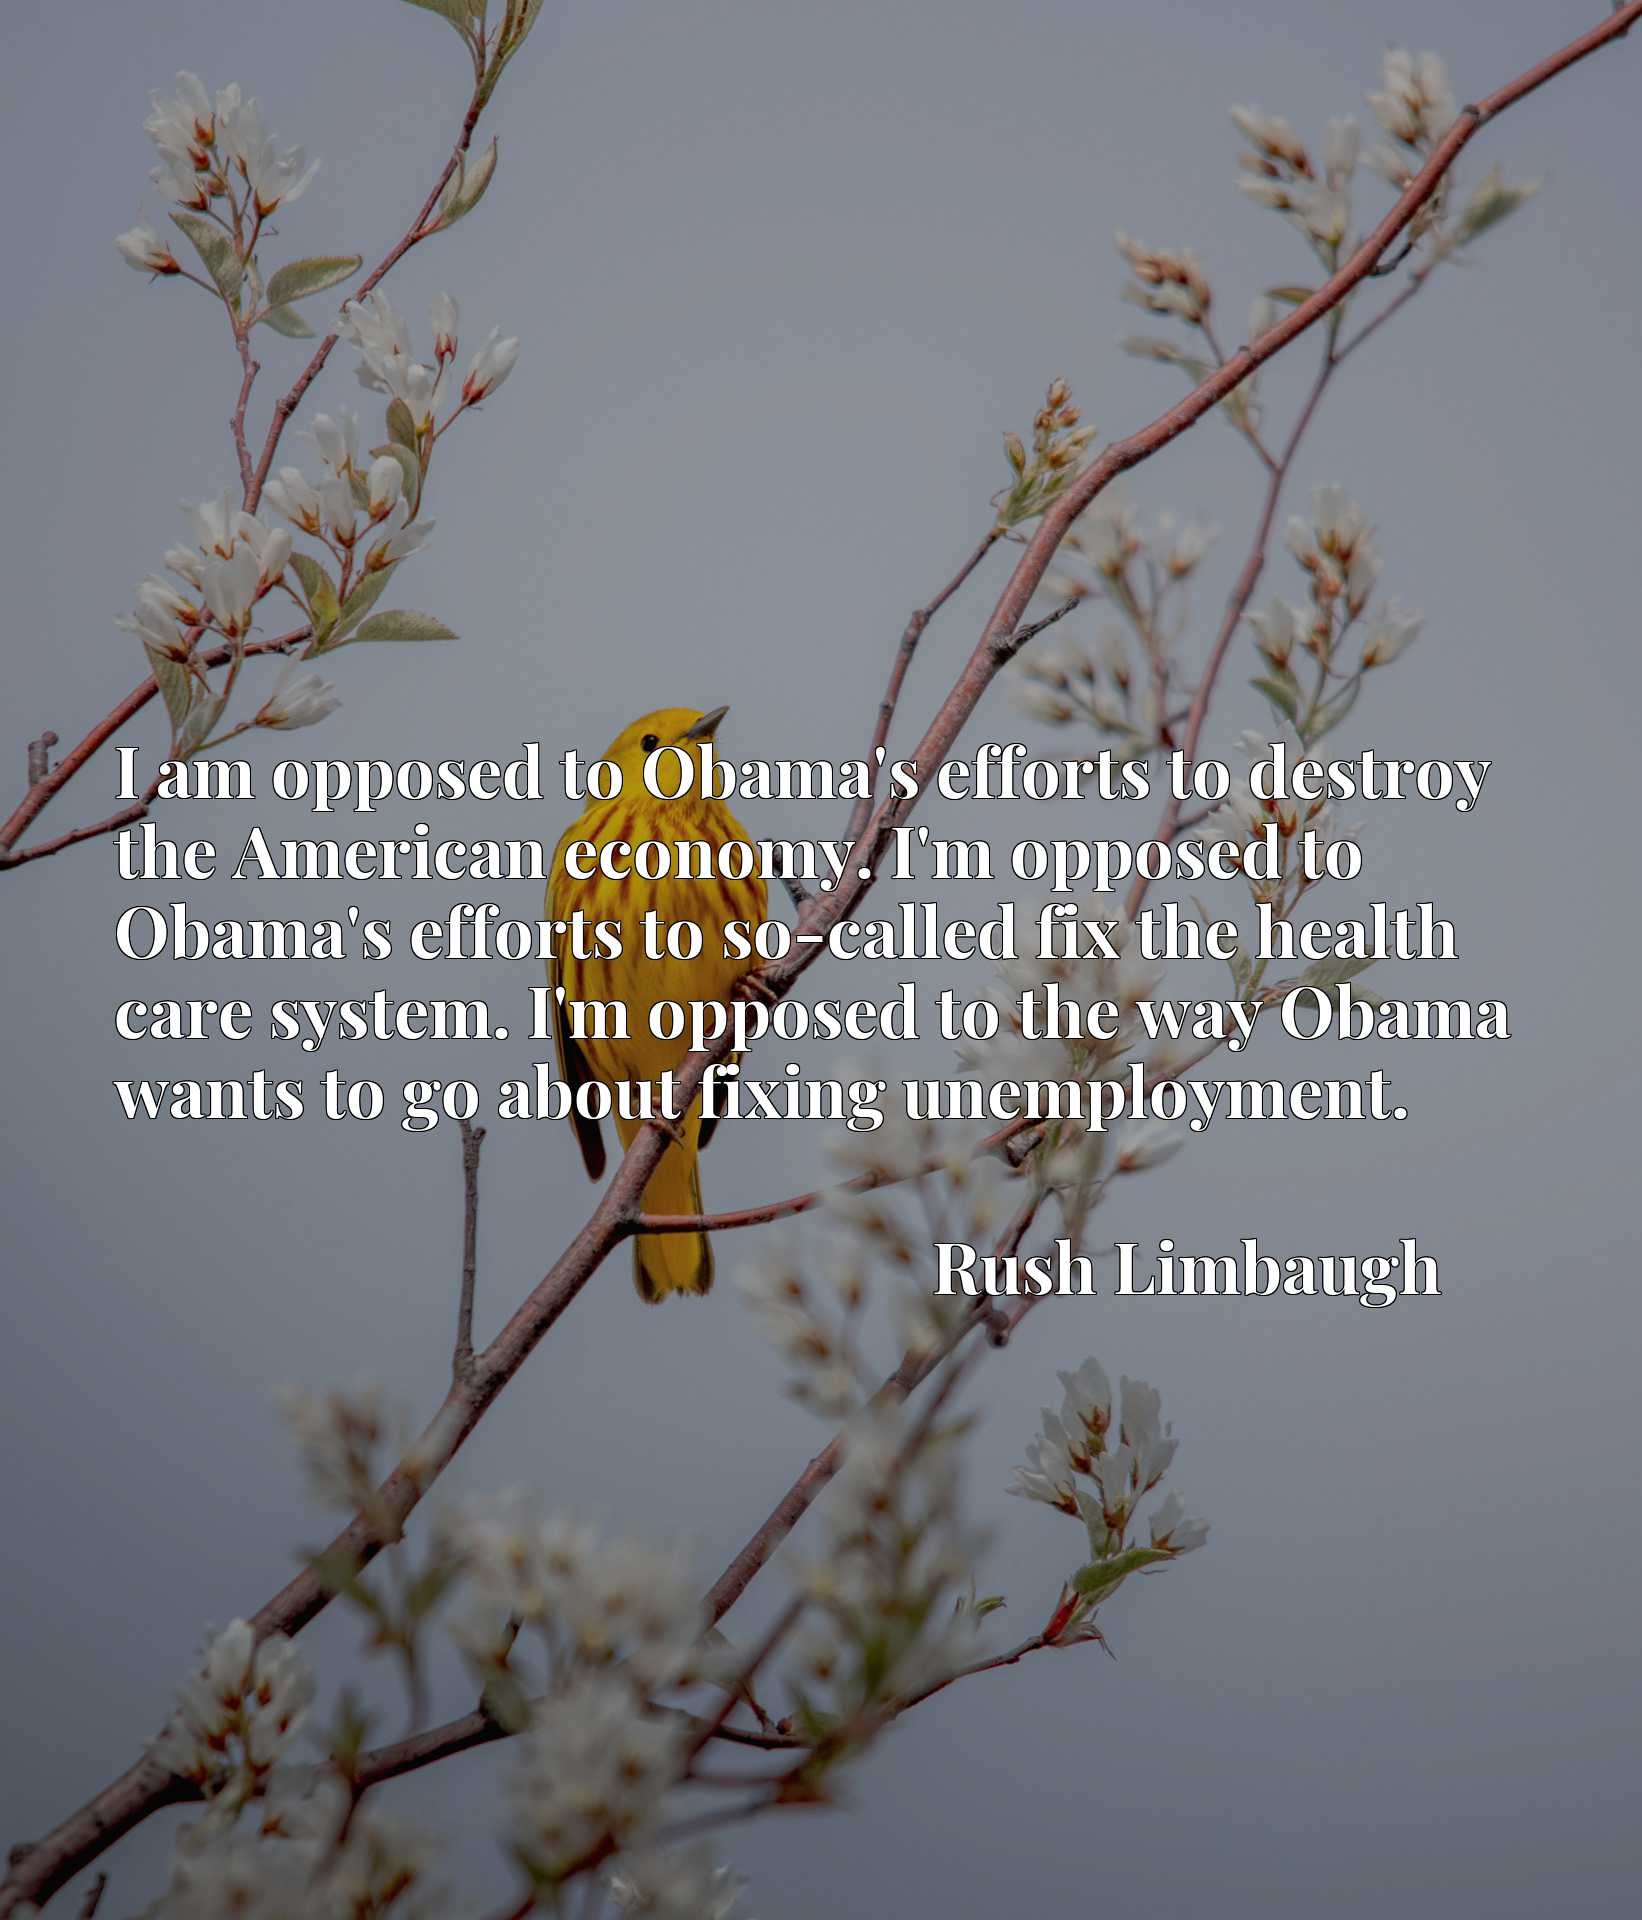 I am opposed to Obama's efforts to destroy the American economy. I'm opposed to Obama's efforts to so-called fix the health care system. I'm opposed to the way Obama wants to go about fixing unemployment.